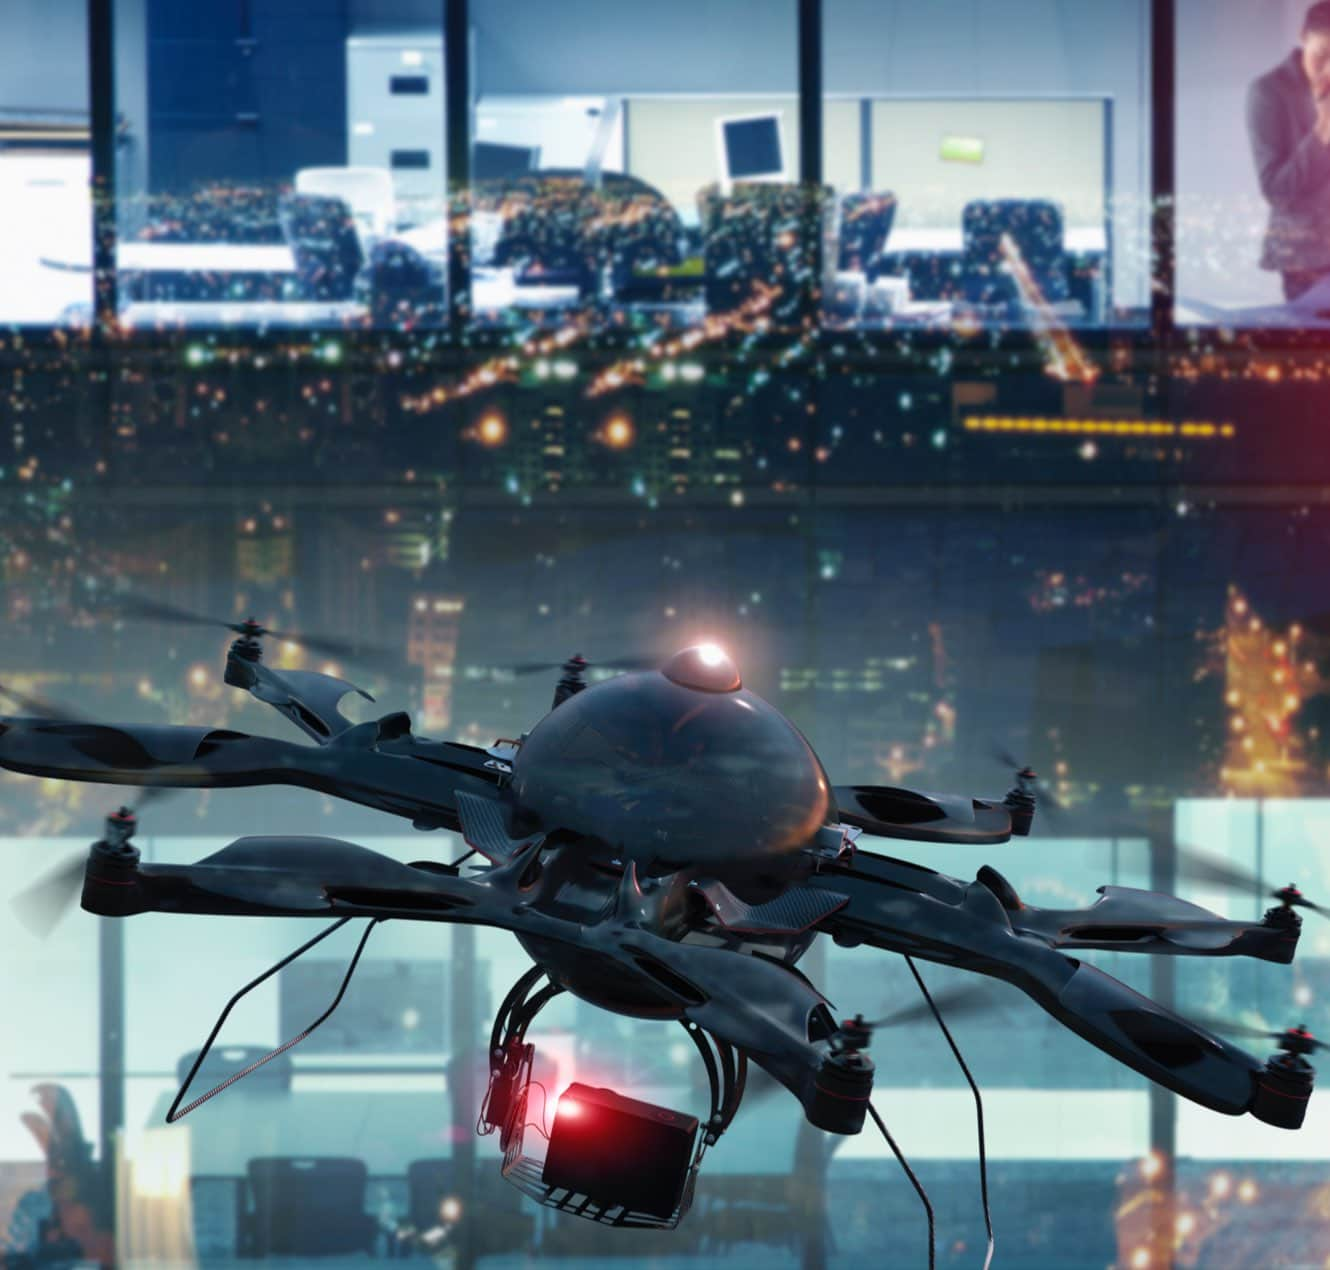 Drones for Insurance Business Operations